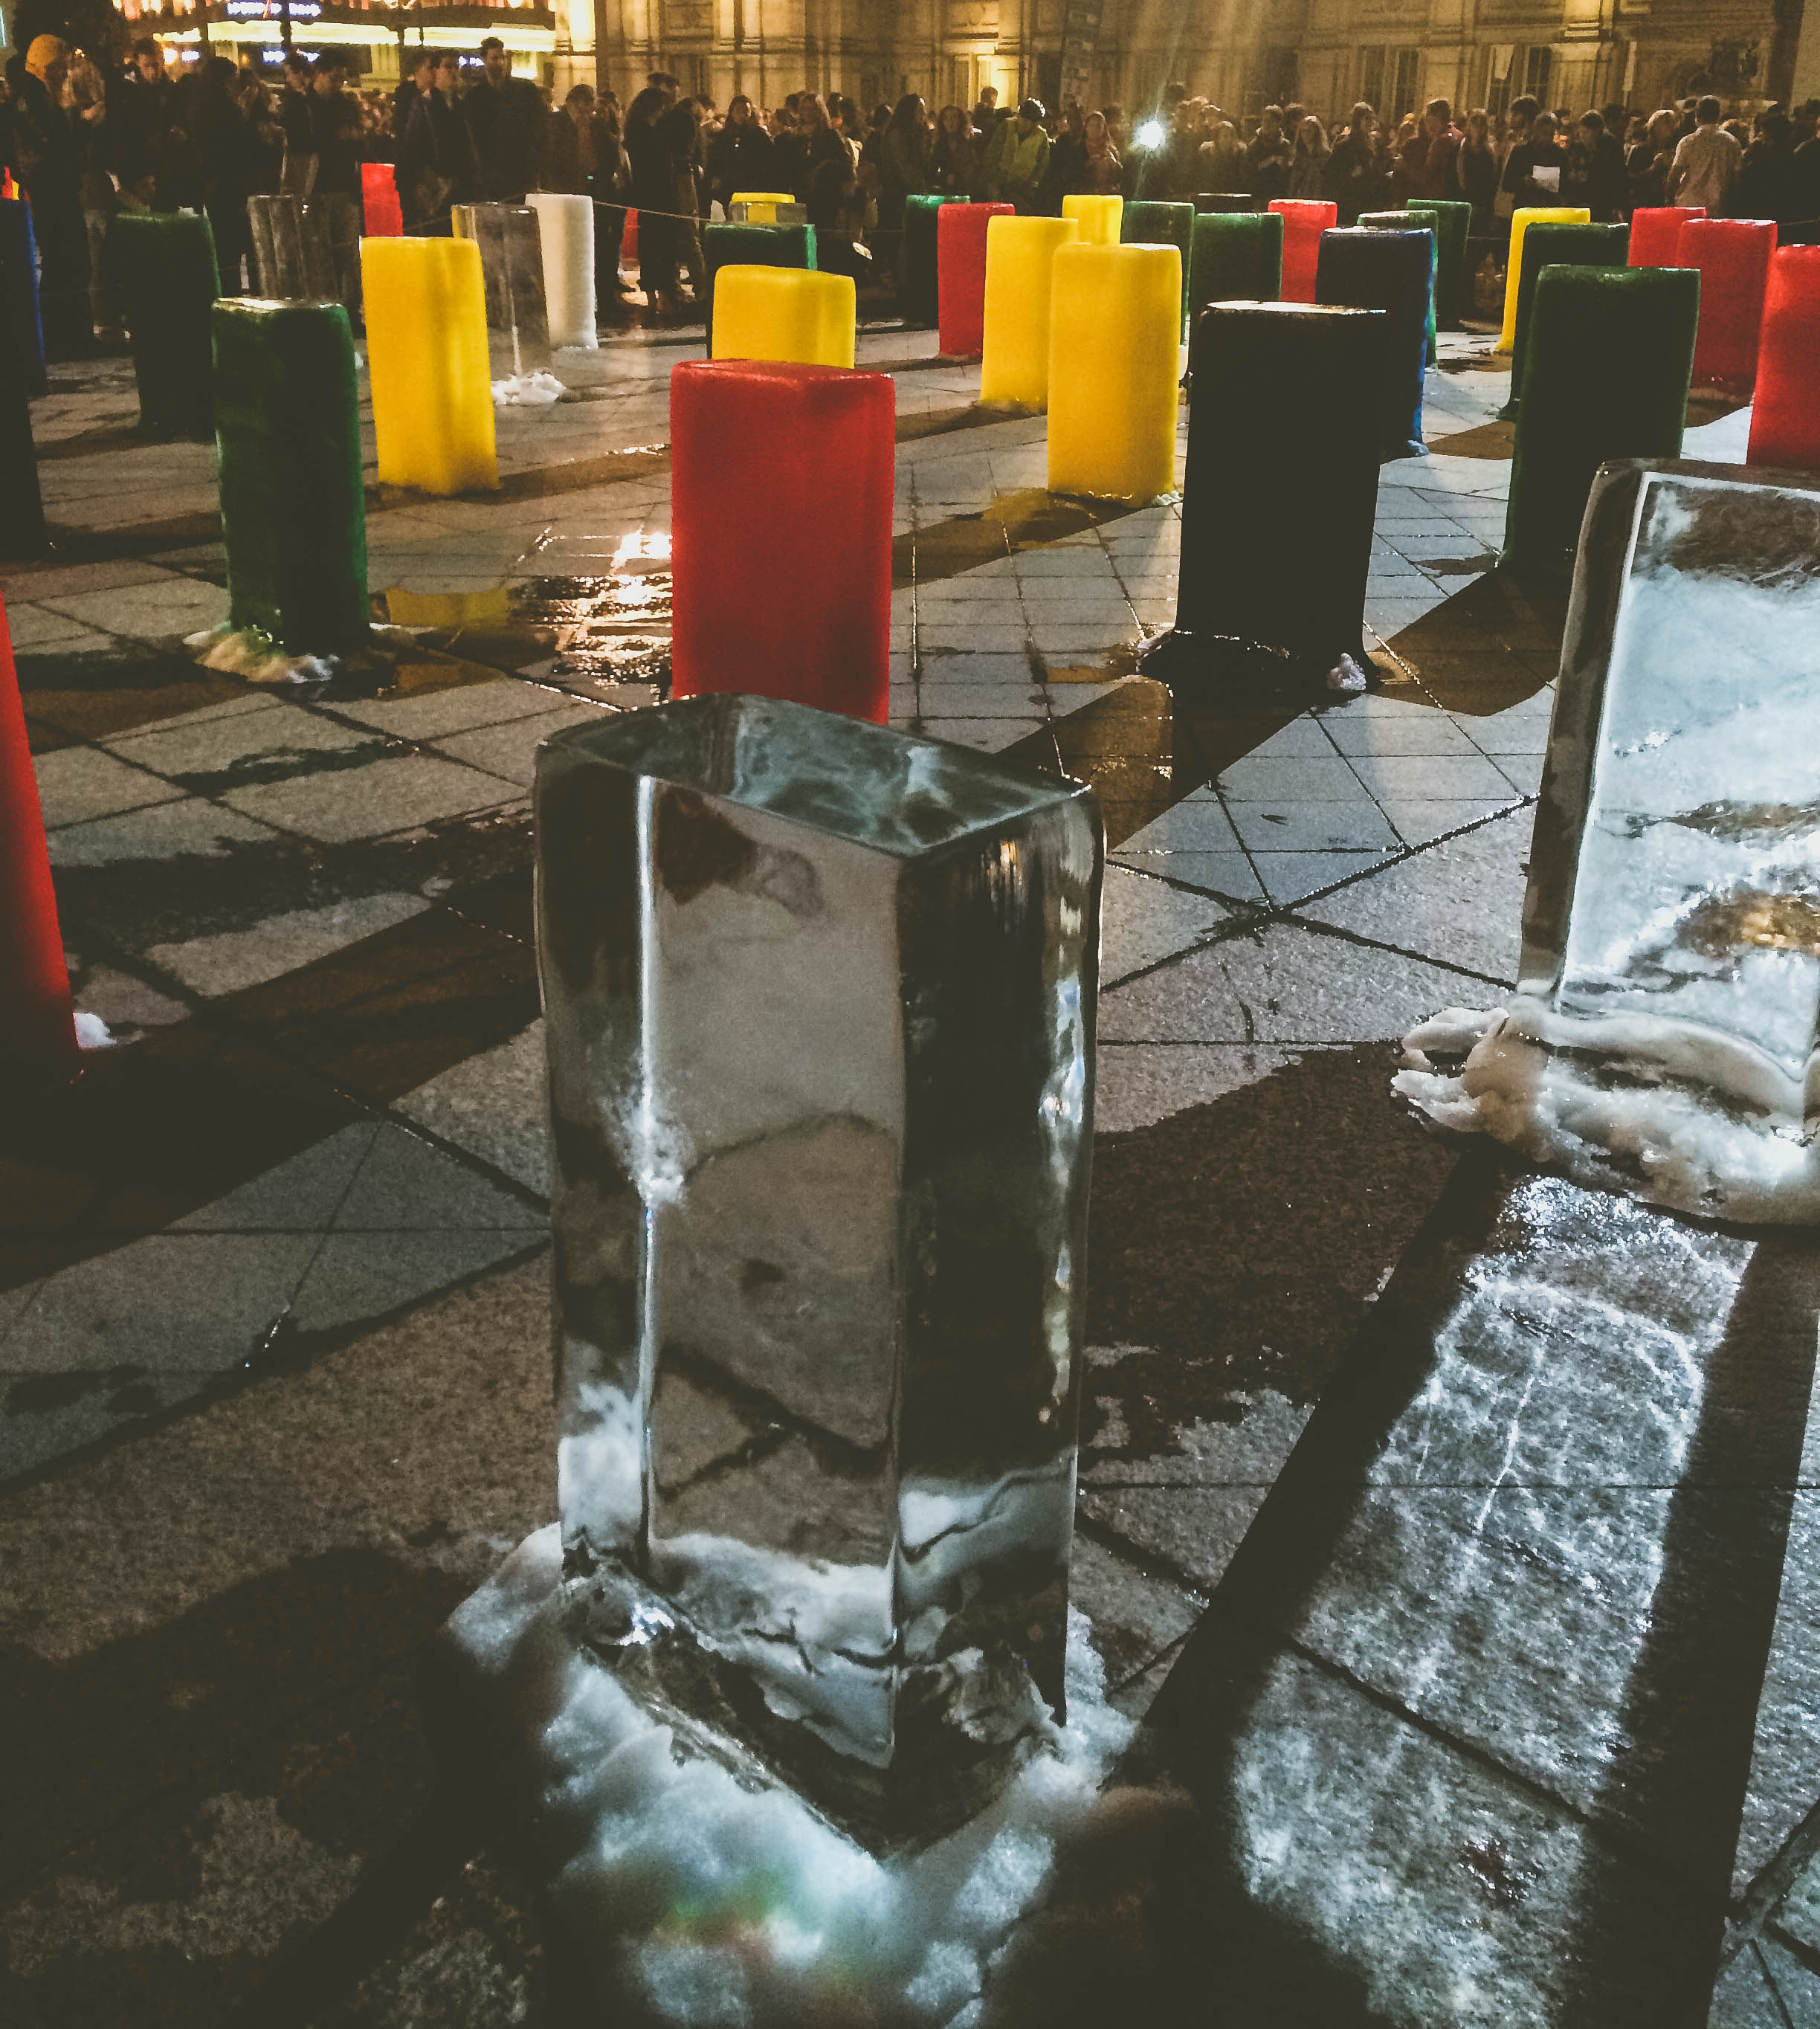 Nuit Blanche 2015: Melting ice installation at Hotel de Ville